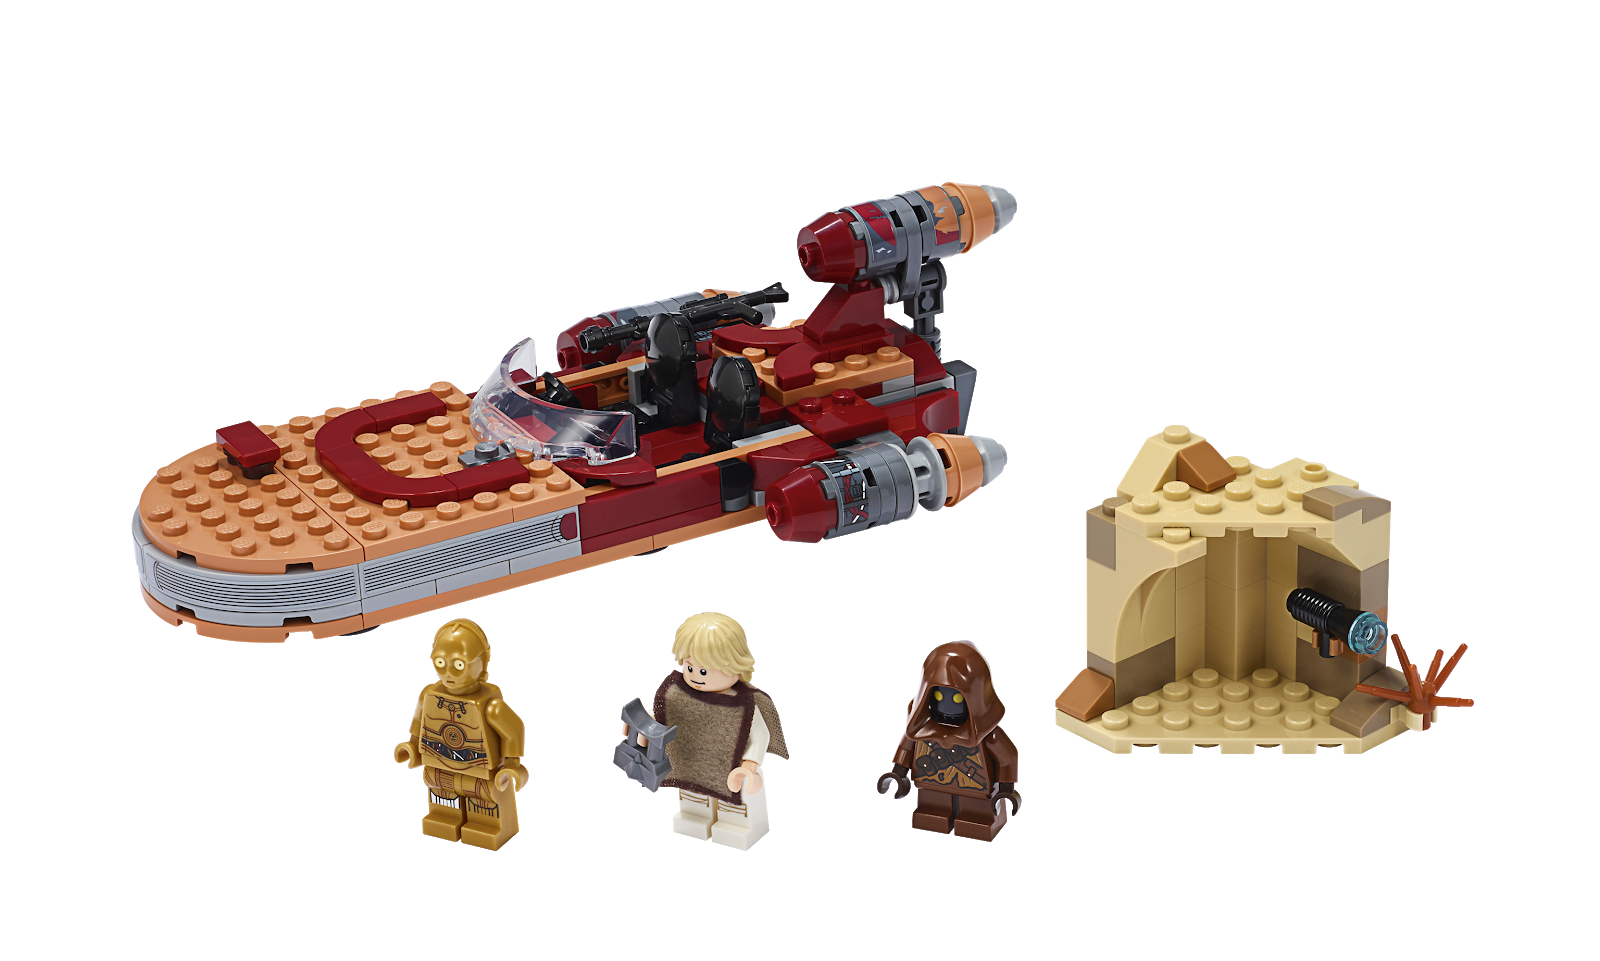 New Lego Marvel Sets 2020 New LEGO Star Wars Sets Coming in January 2020